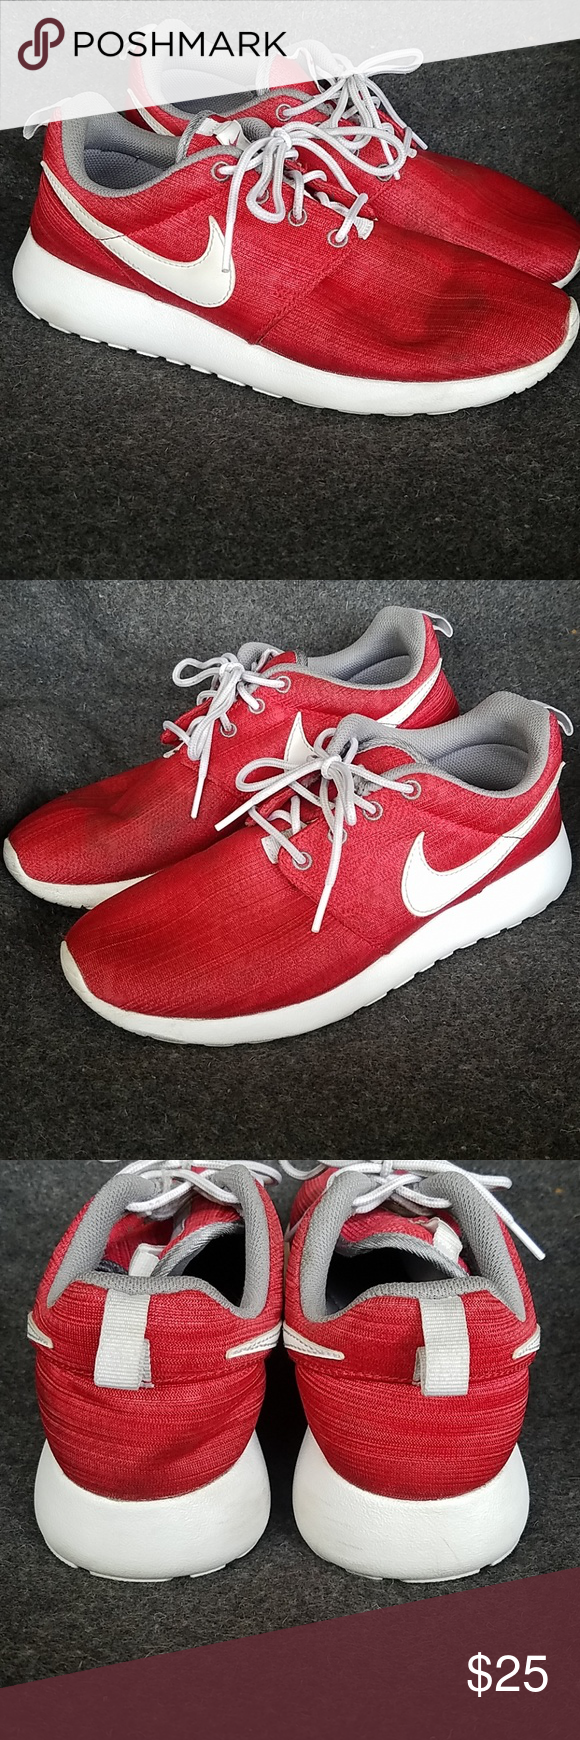 d9745f9e48dc5 Nike Roshe USED no box big kids sz6.5y Nike Roshe Red White. Condition  7 10. Nike Shoes Sneakers